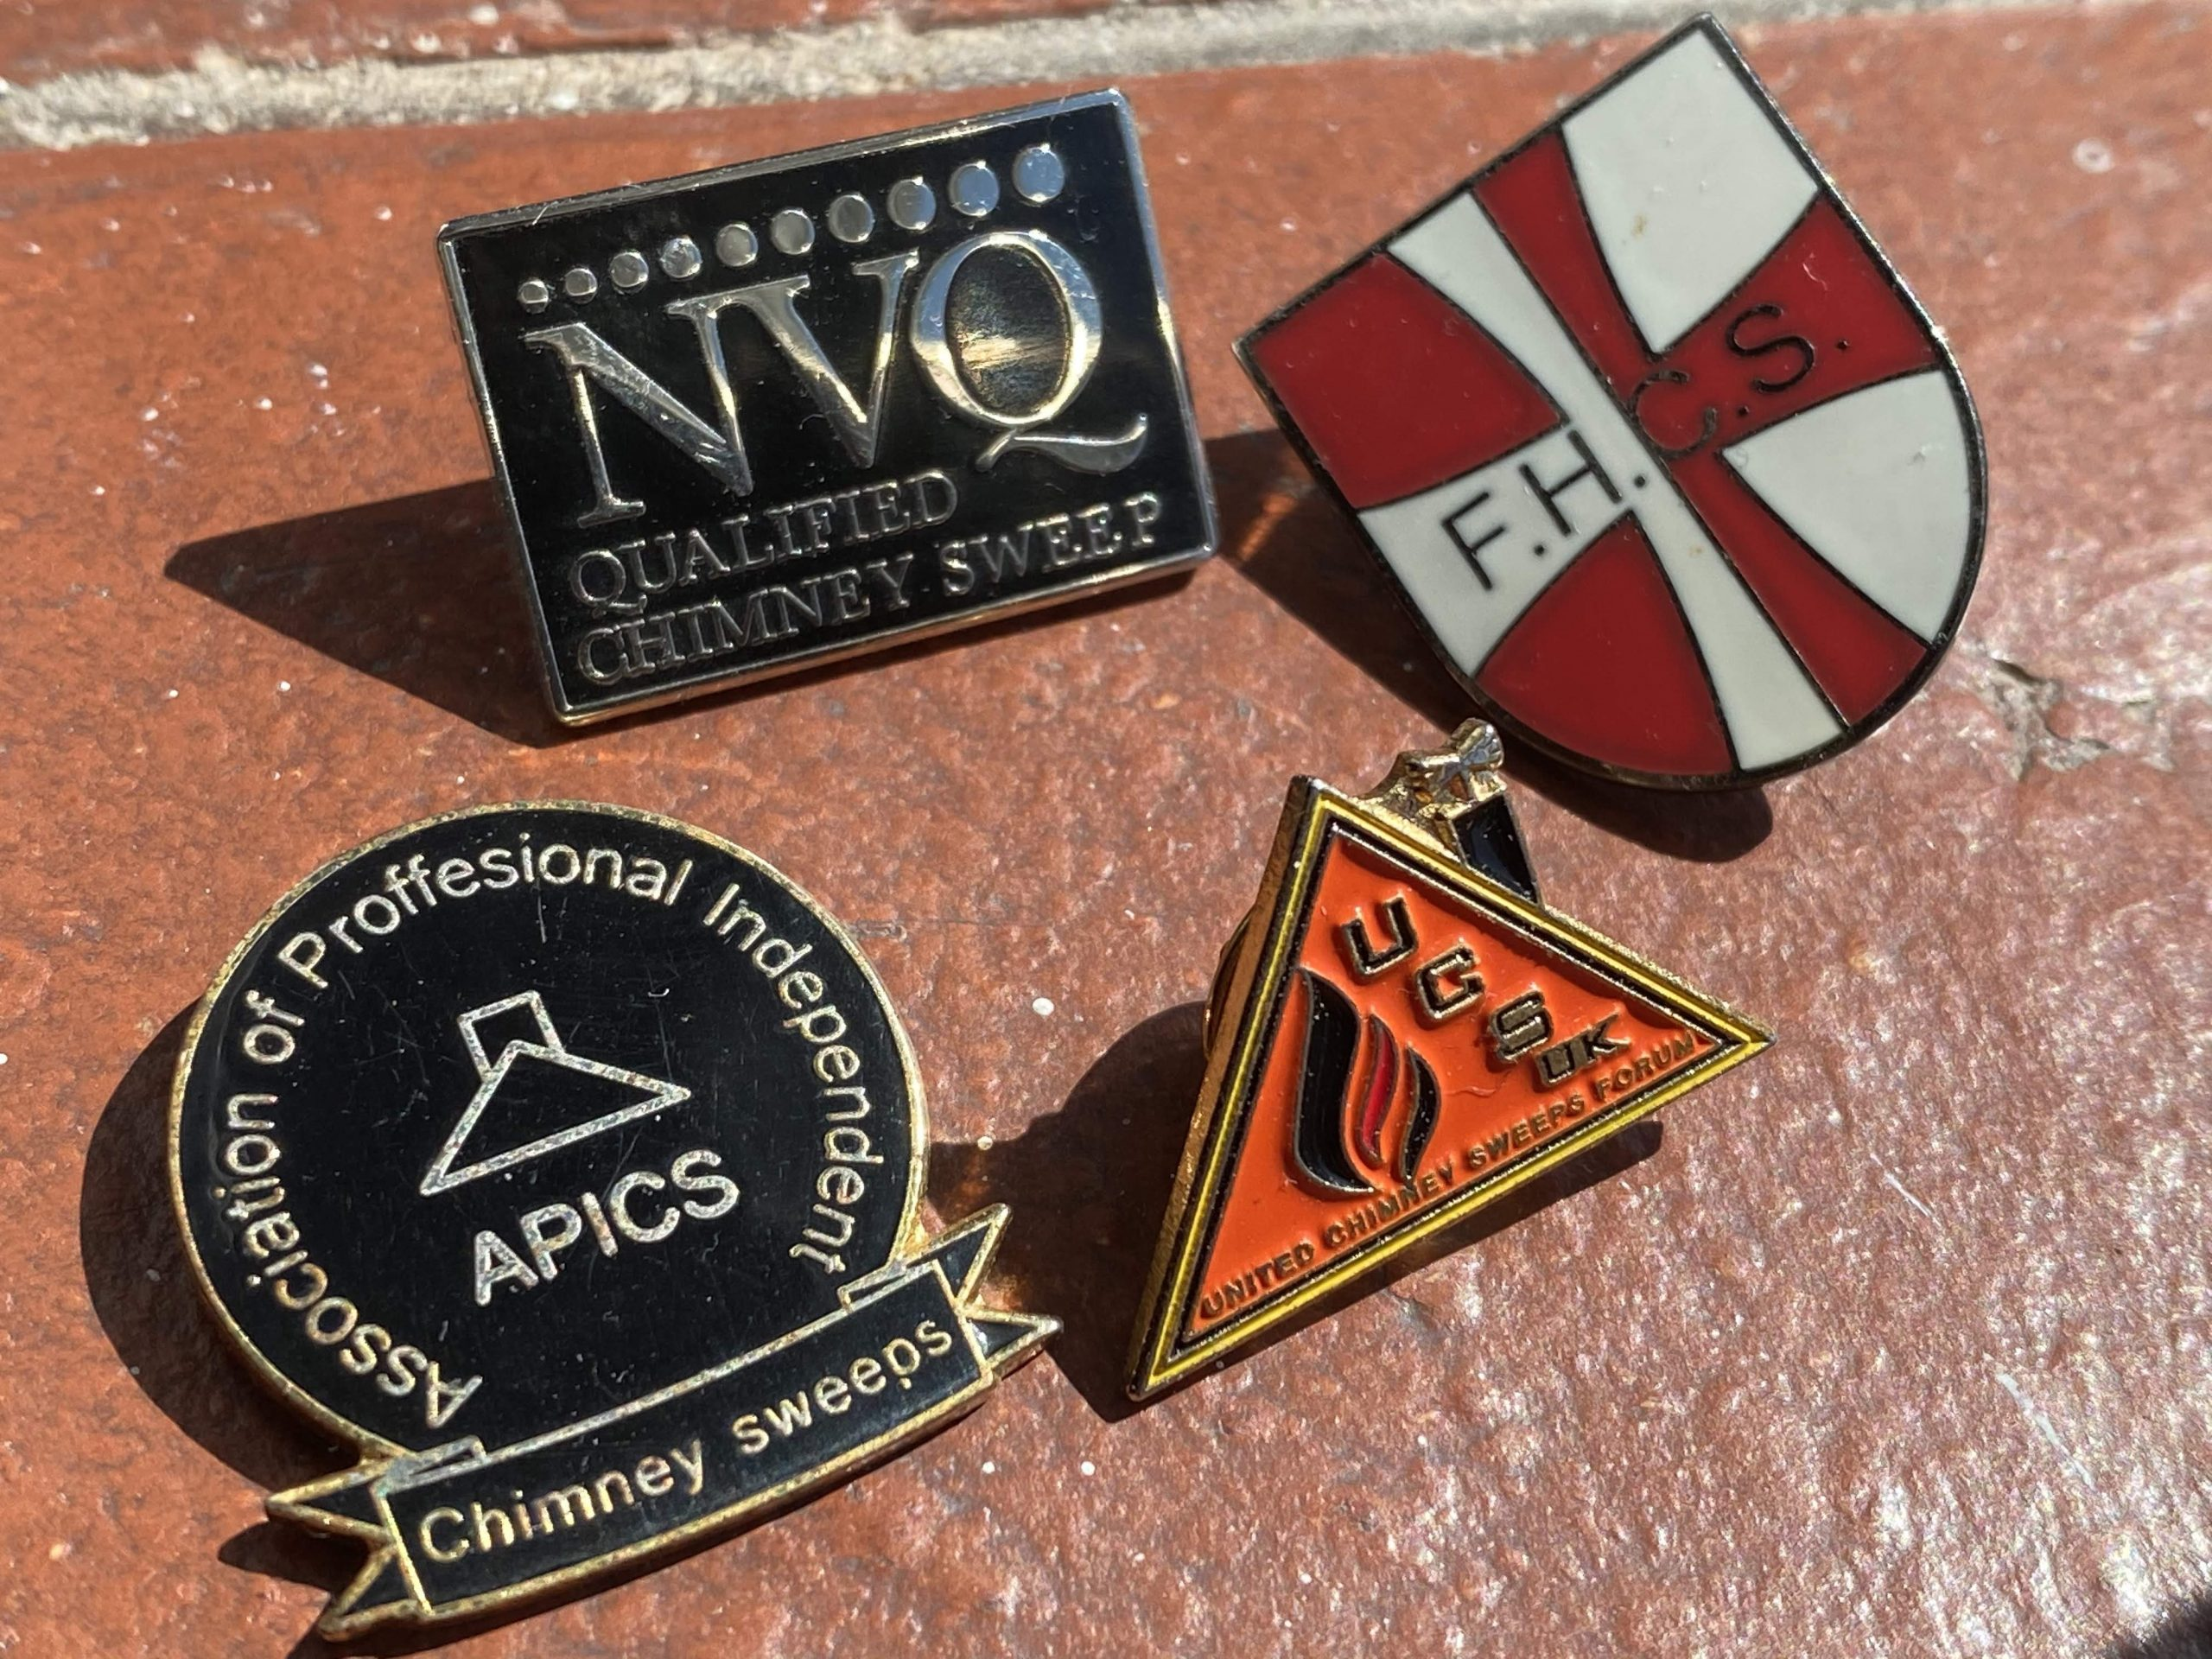 Exeter Chimney Sweep enamel badges